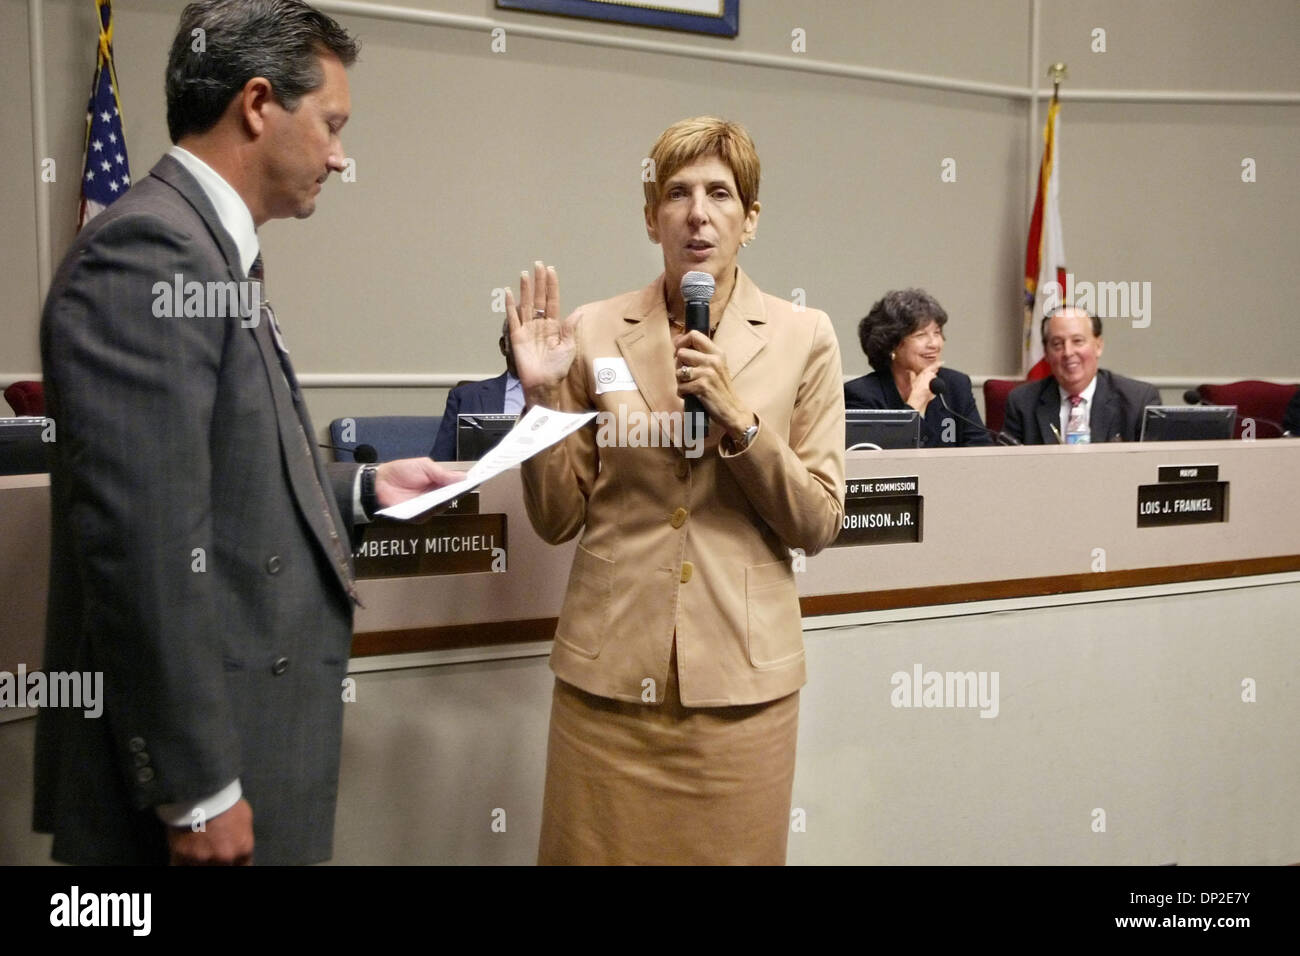 May 31, 2006; West Palm Beach, FL, USA; New West Palm Beach City Commissioner Geraldine Muoio, right is sworn in by city clerk Blane Kauthen, after being selected by Mayor Lois Frankel. Muoio replaces former district 4 commissioner Ray Liberti. Mandatory Credit: Photo by Greg Lovett/Palm Beach Post/ZUMA Press. (©) Copyright 2006 by Palm Beach Post - Stock Image